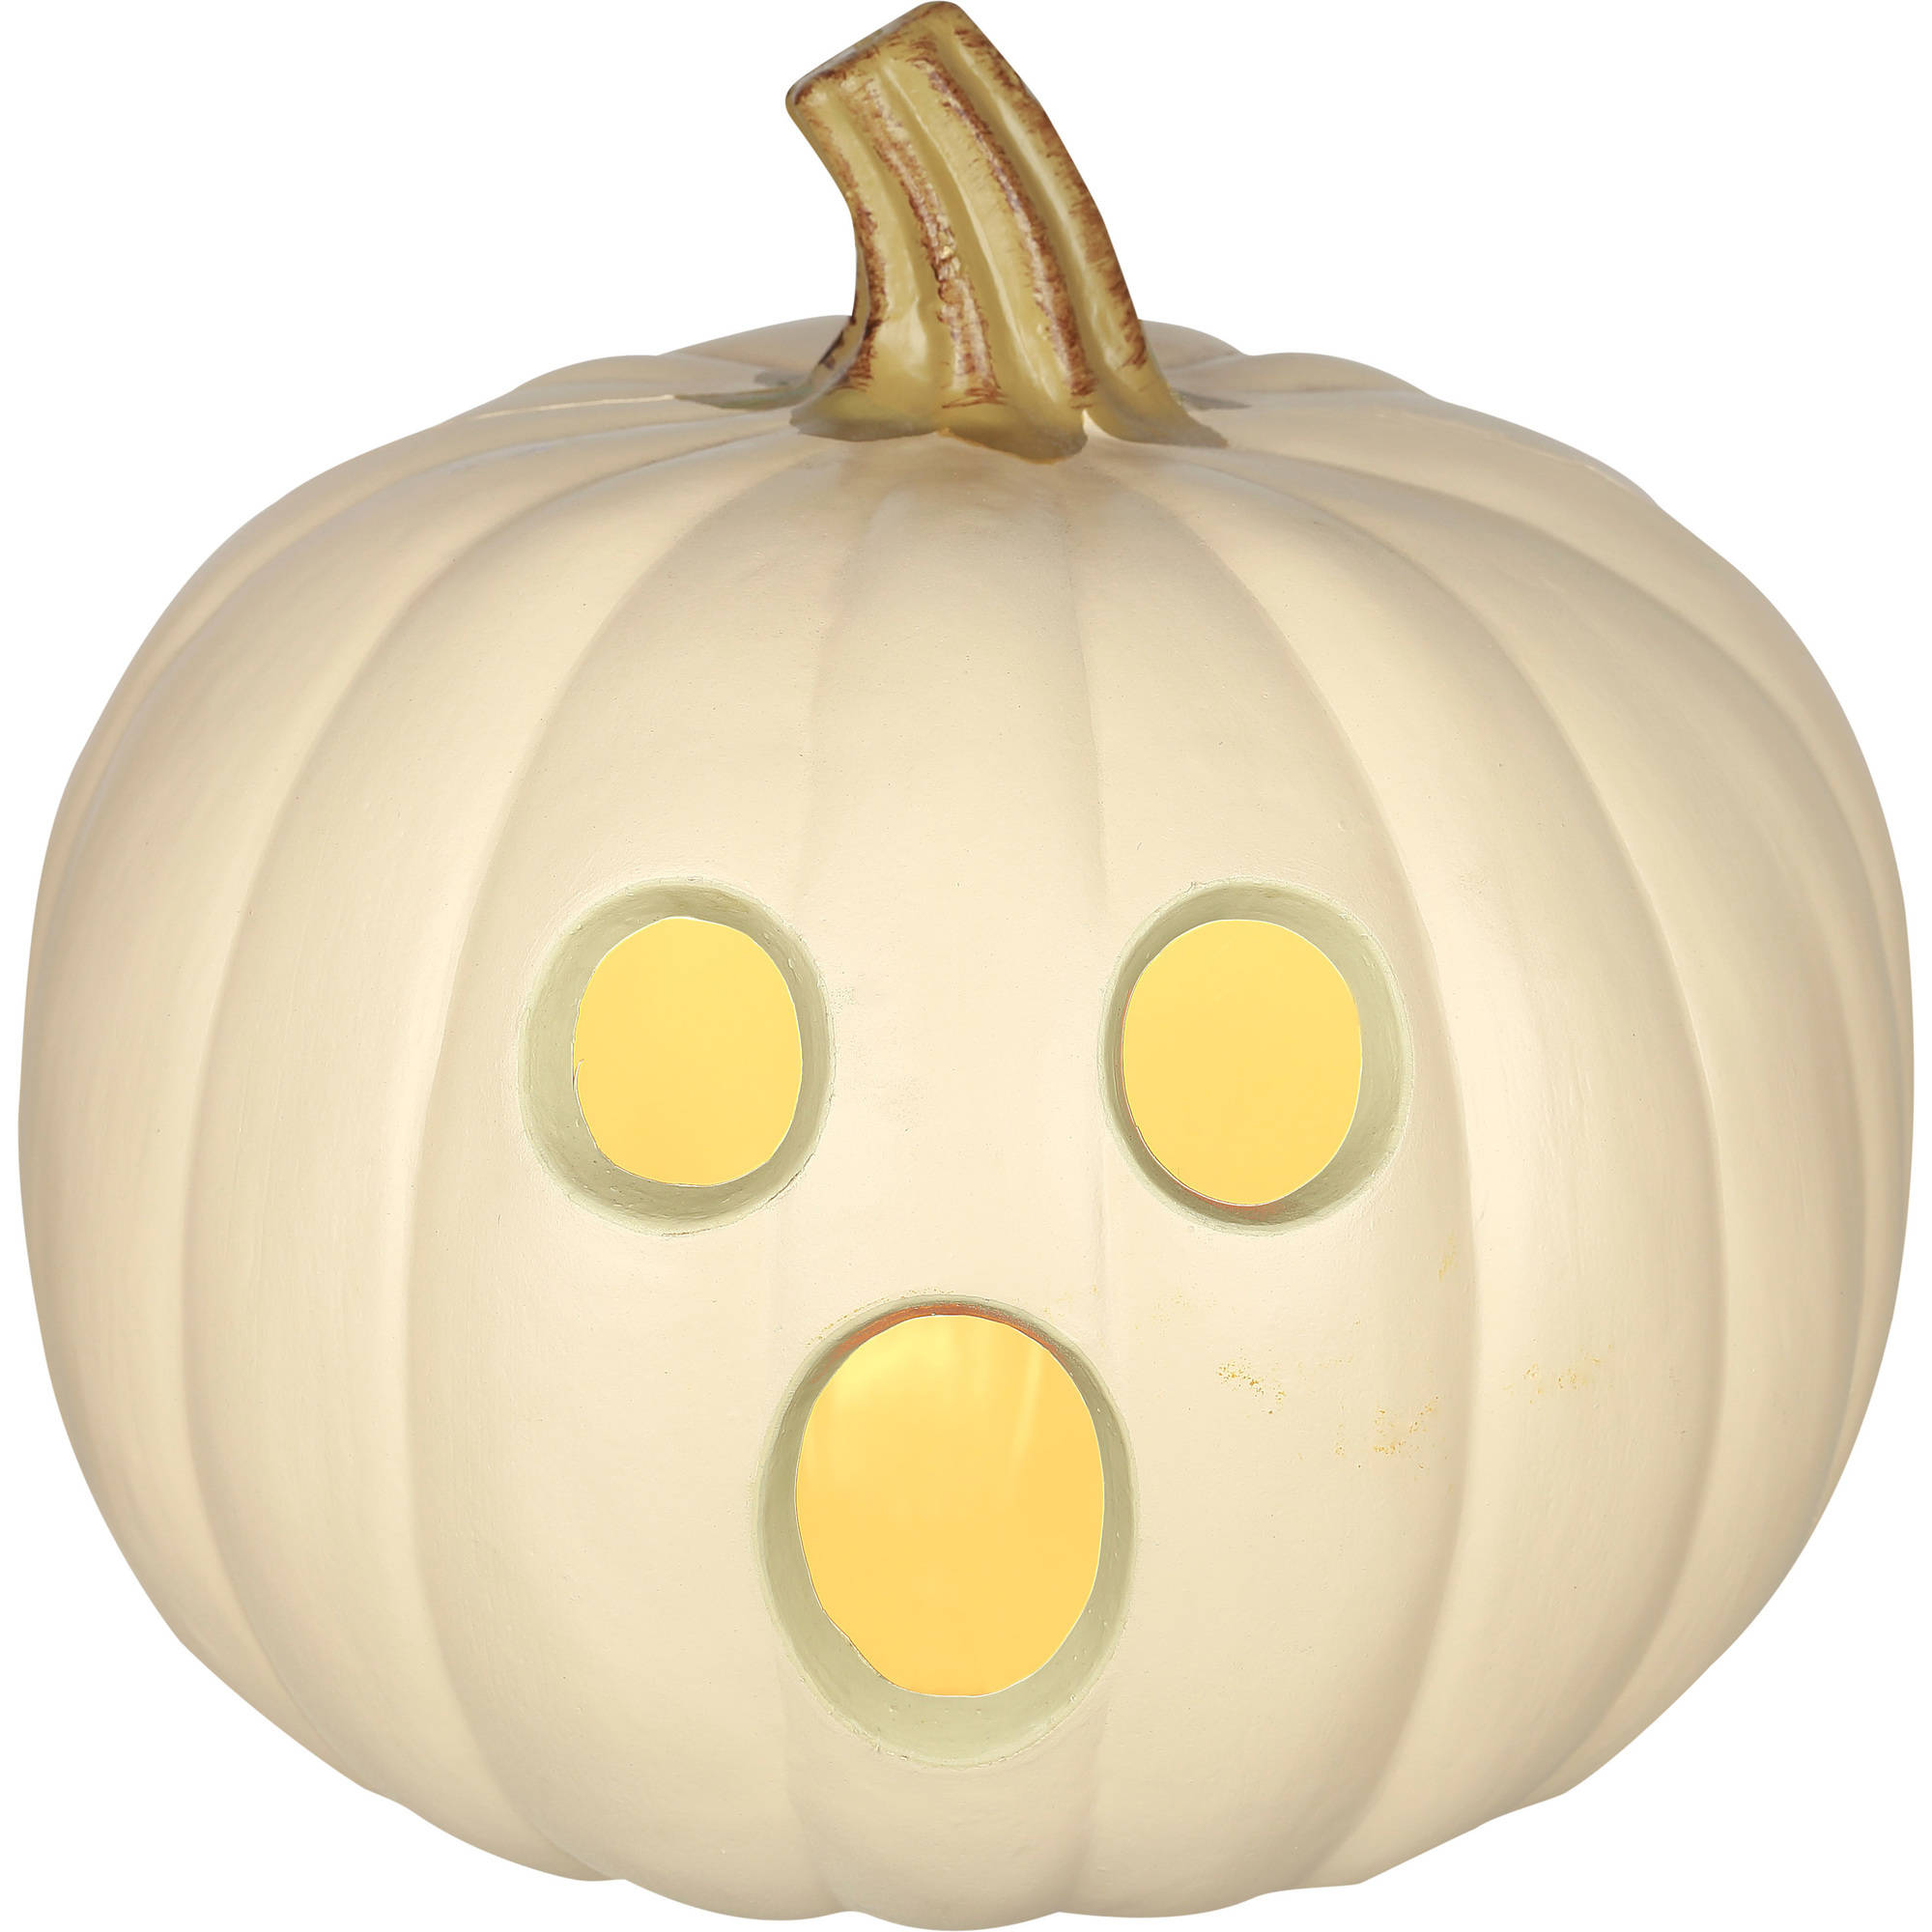 "Molded Light Up Jack O Lantern, 9"" Halloween Decoration"